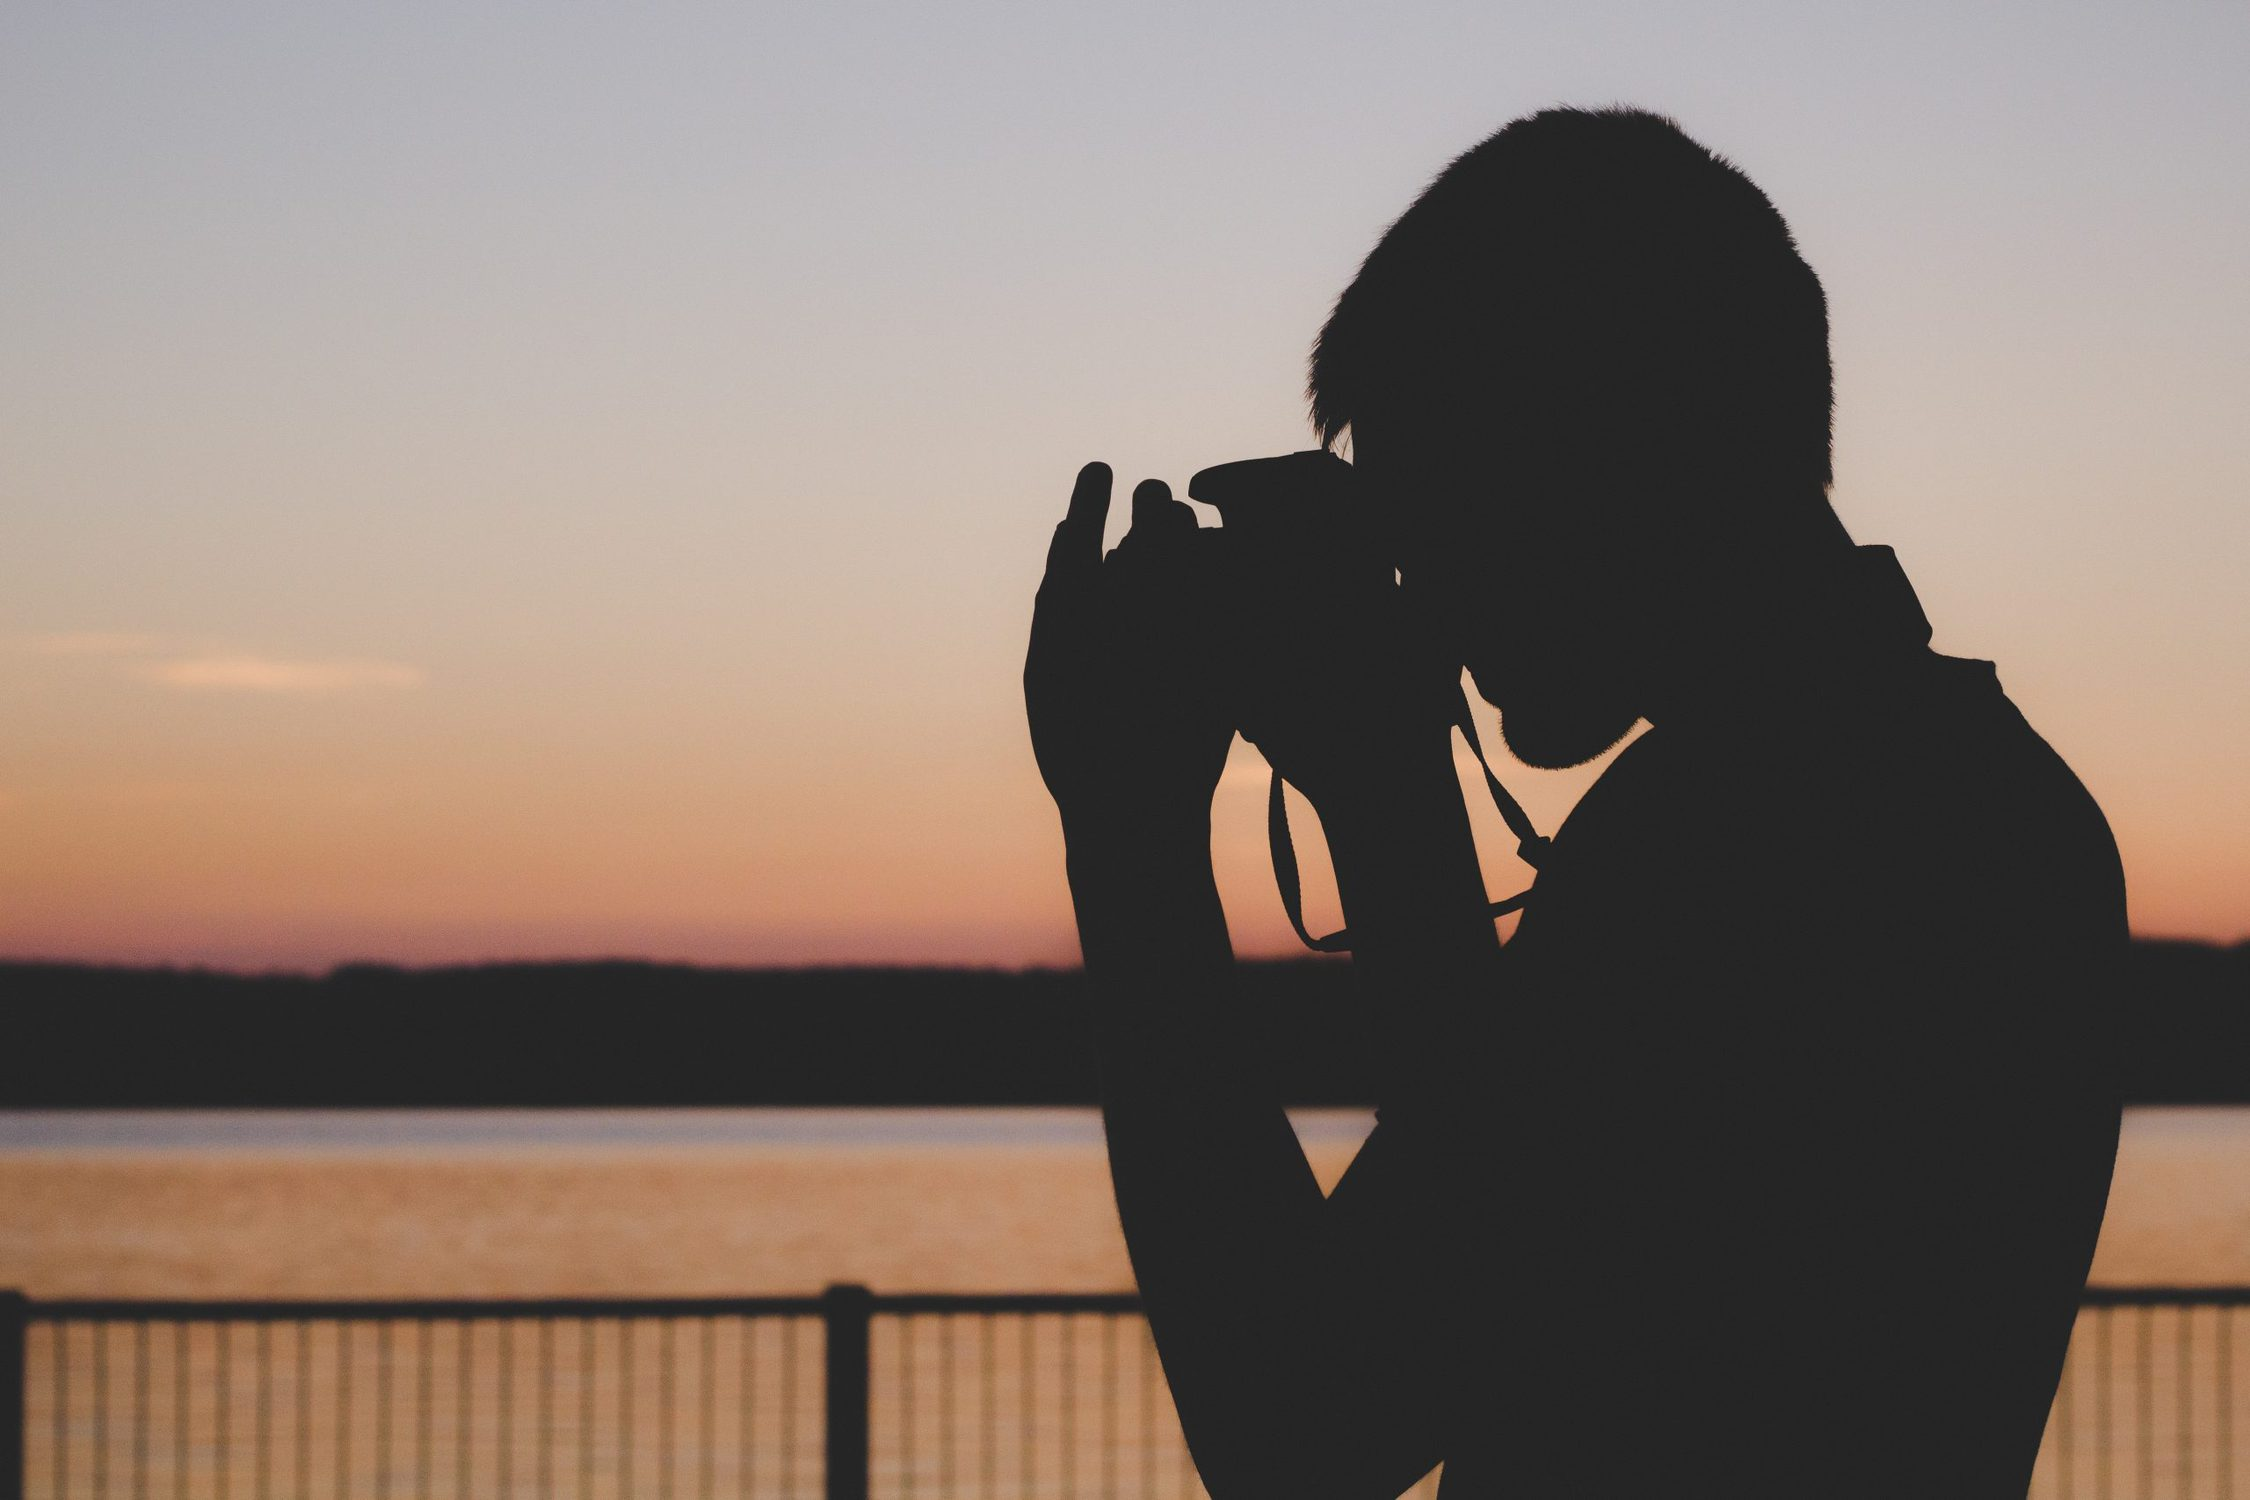 image of silhouette of person using camera